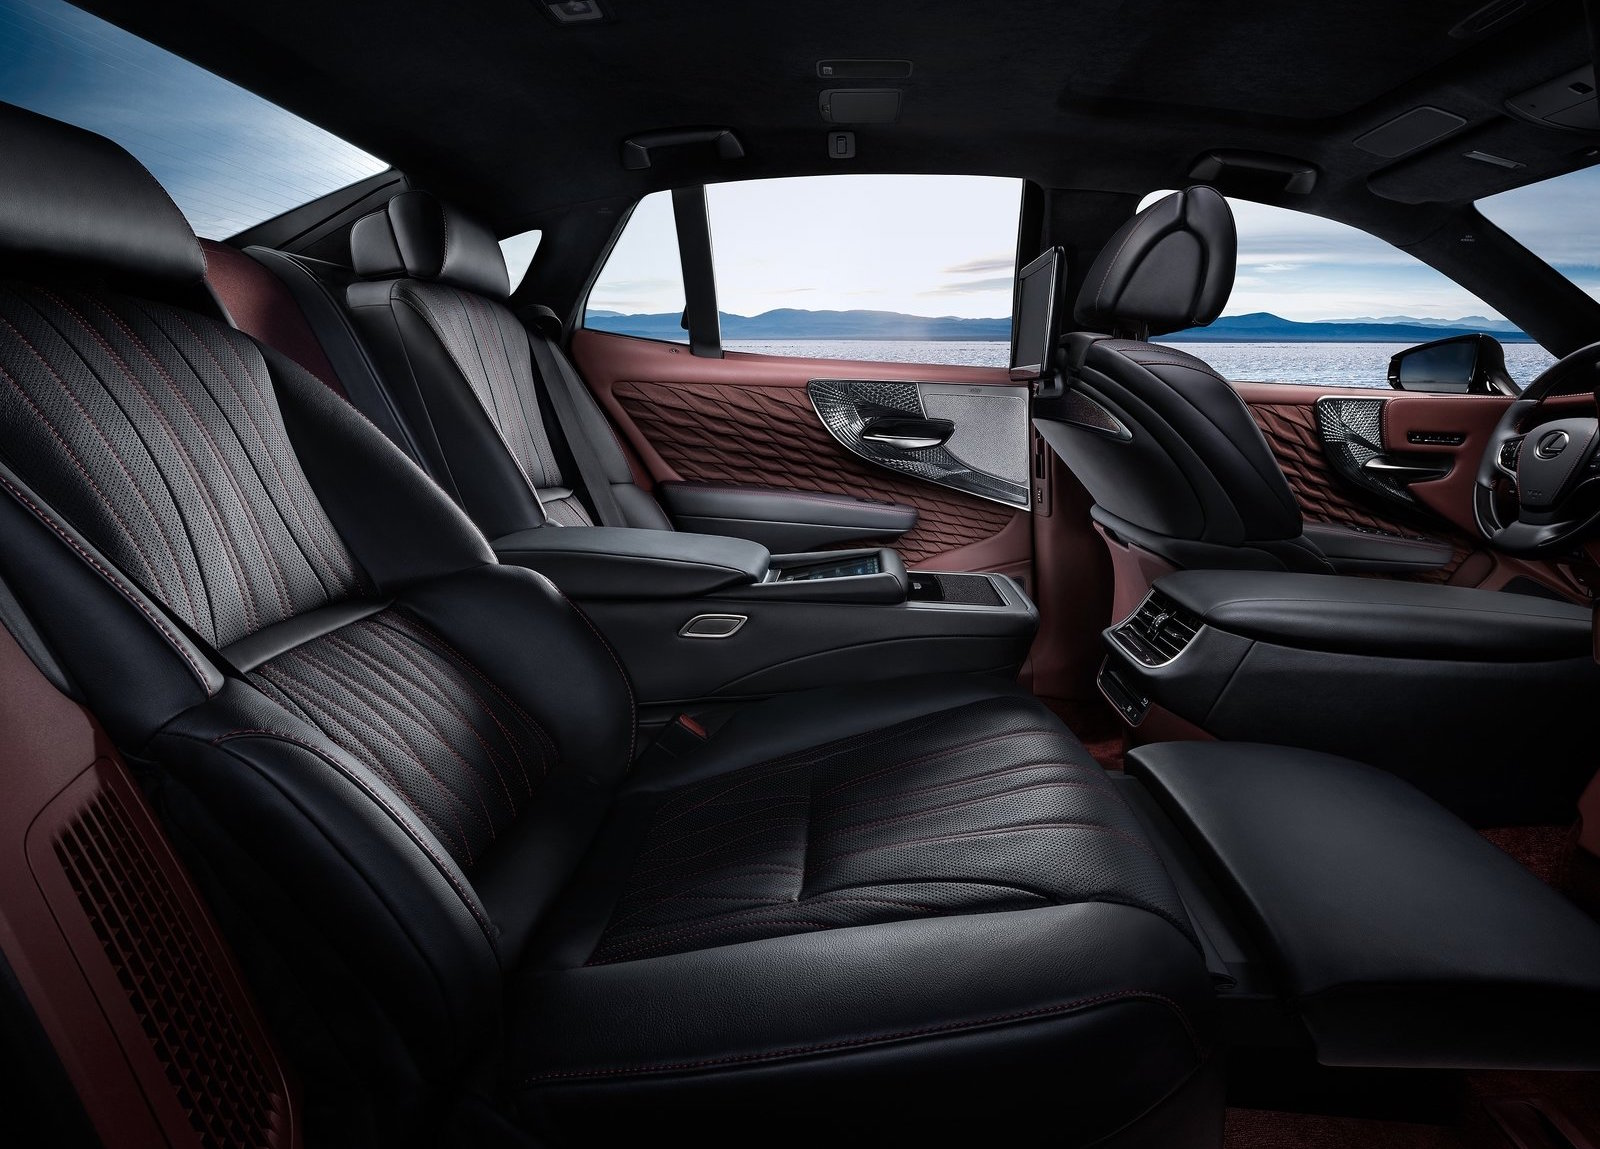 2018 lexus 600h. exellent 2018 inside are a set of new seats with 28way power adjustment for the front  heating cooling and massage functions while rear seat is optionally  2018 lexus 600h